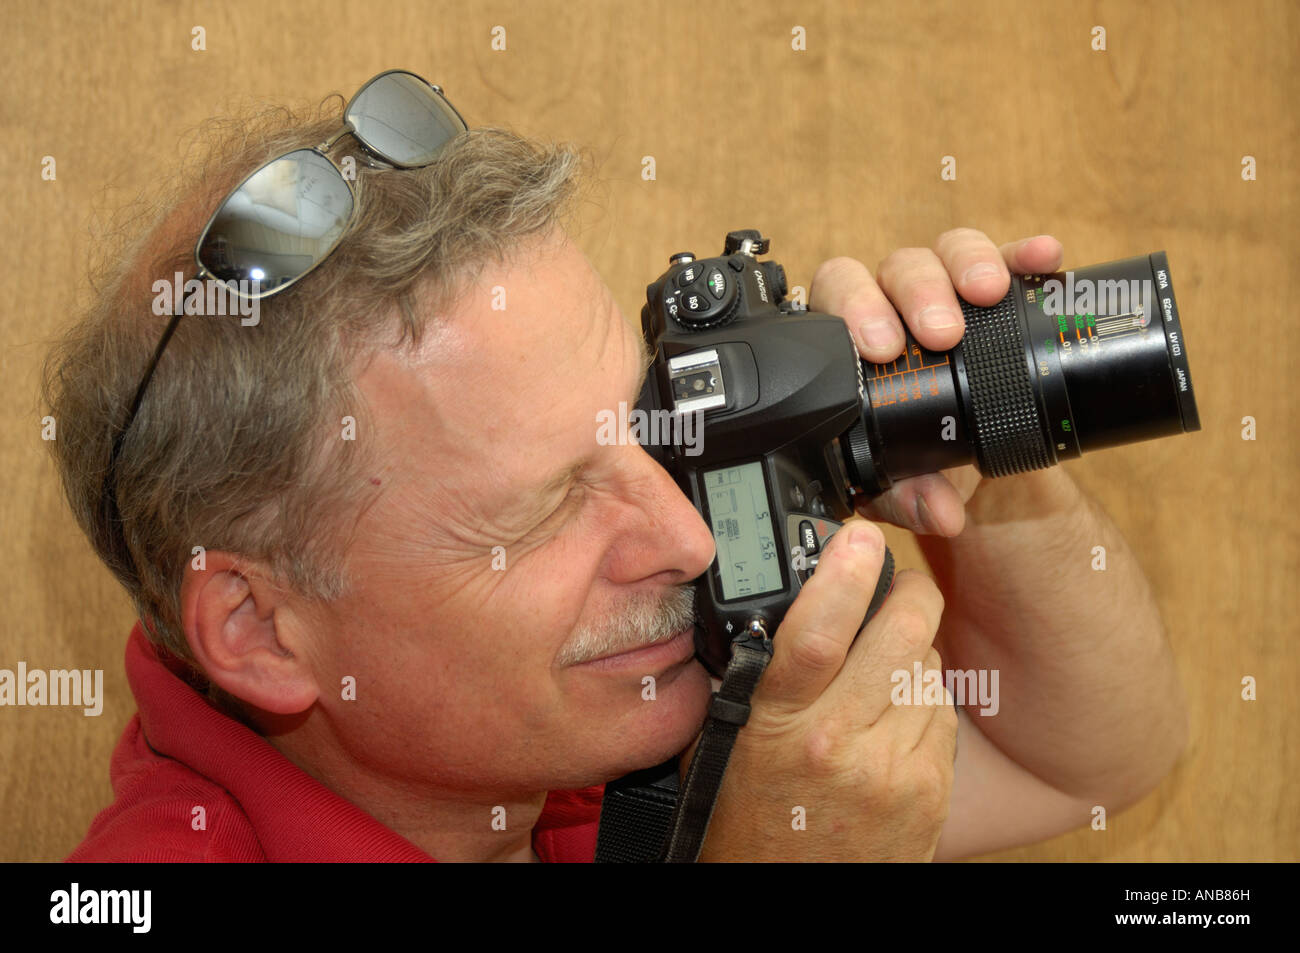 A professional photographer tests a brand new digital SLR camera with a macro lens mounted. - Stock Image